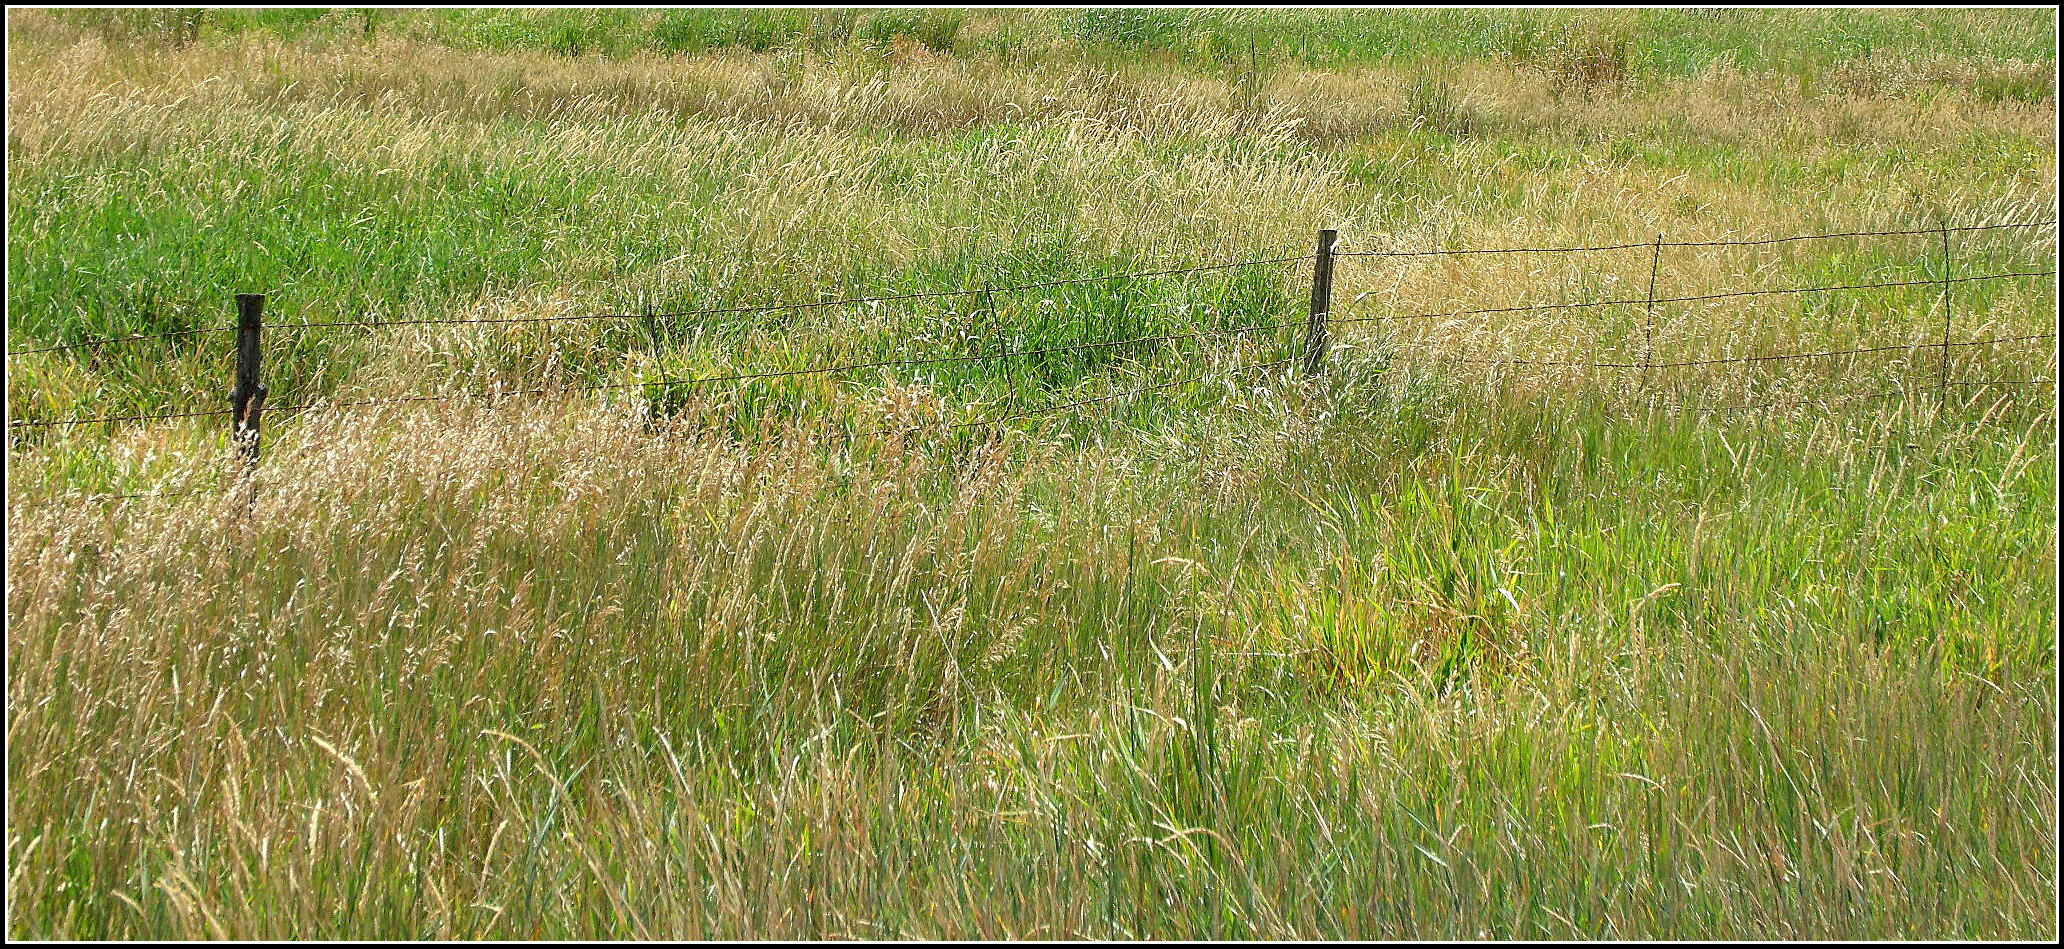 wild grass and fence line | Scott's Place...Images and Words